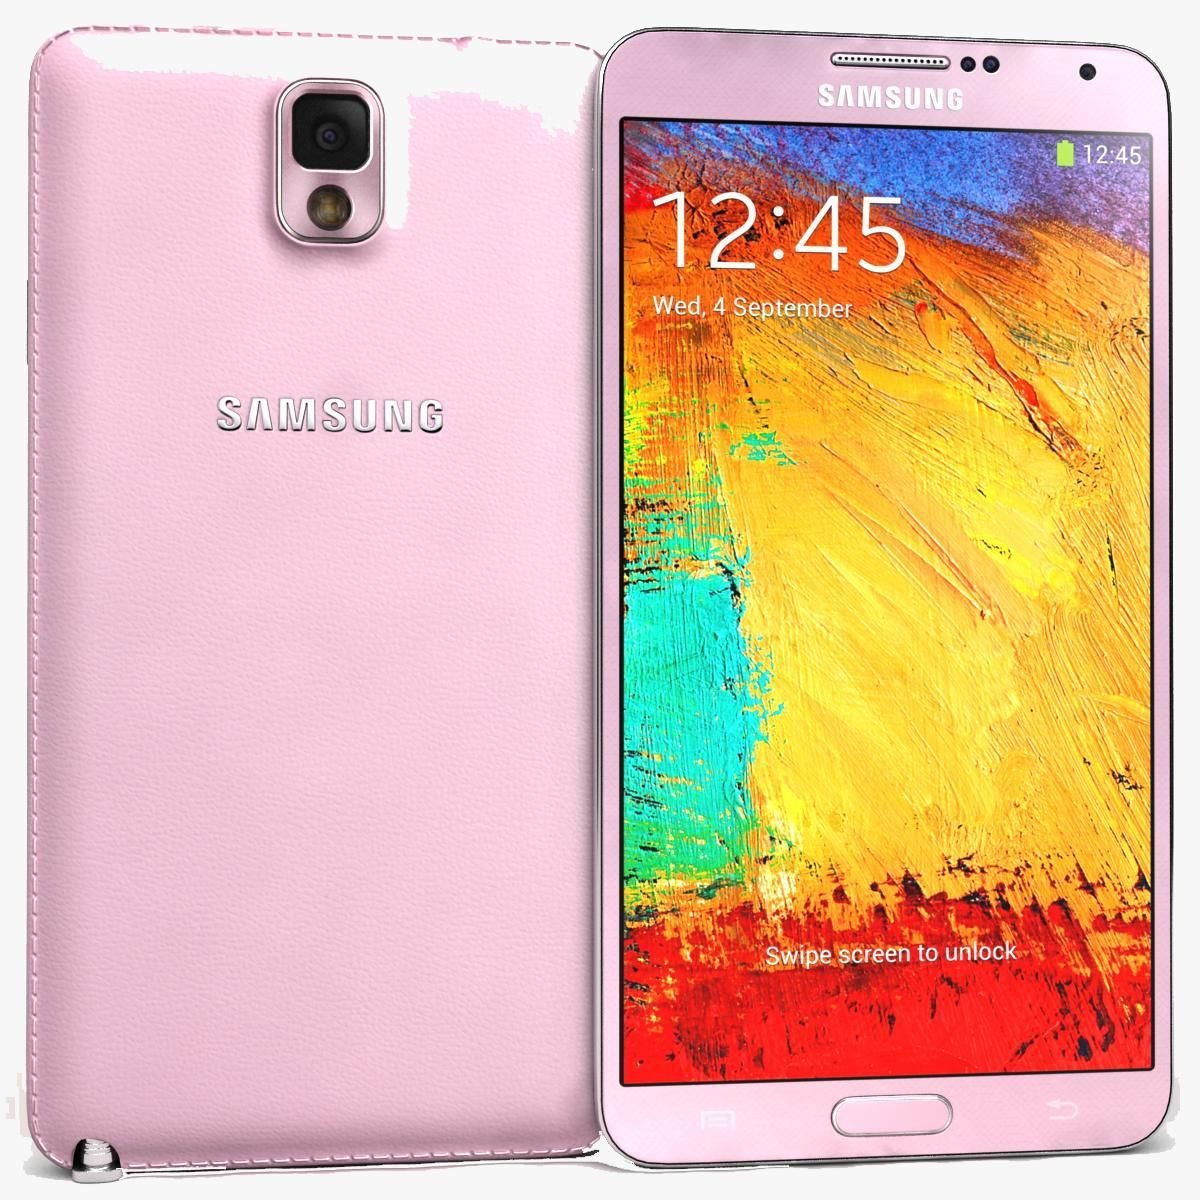 Samsung Galaxy Note 3 Pink 3d Model Ad Galaxy Samsung Note Model Samsung Galaxy Note Galaxy Note Galaxy Note 3